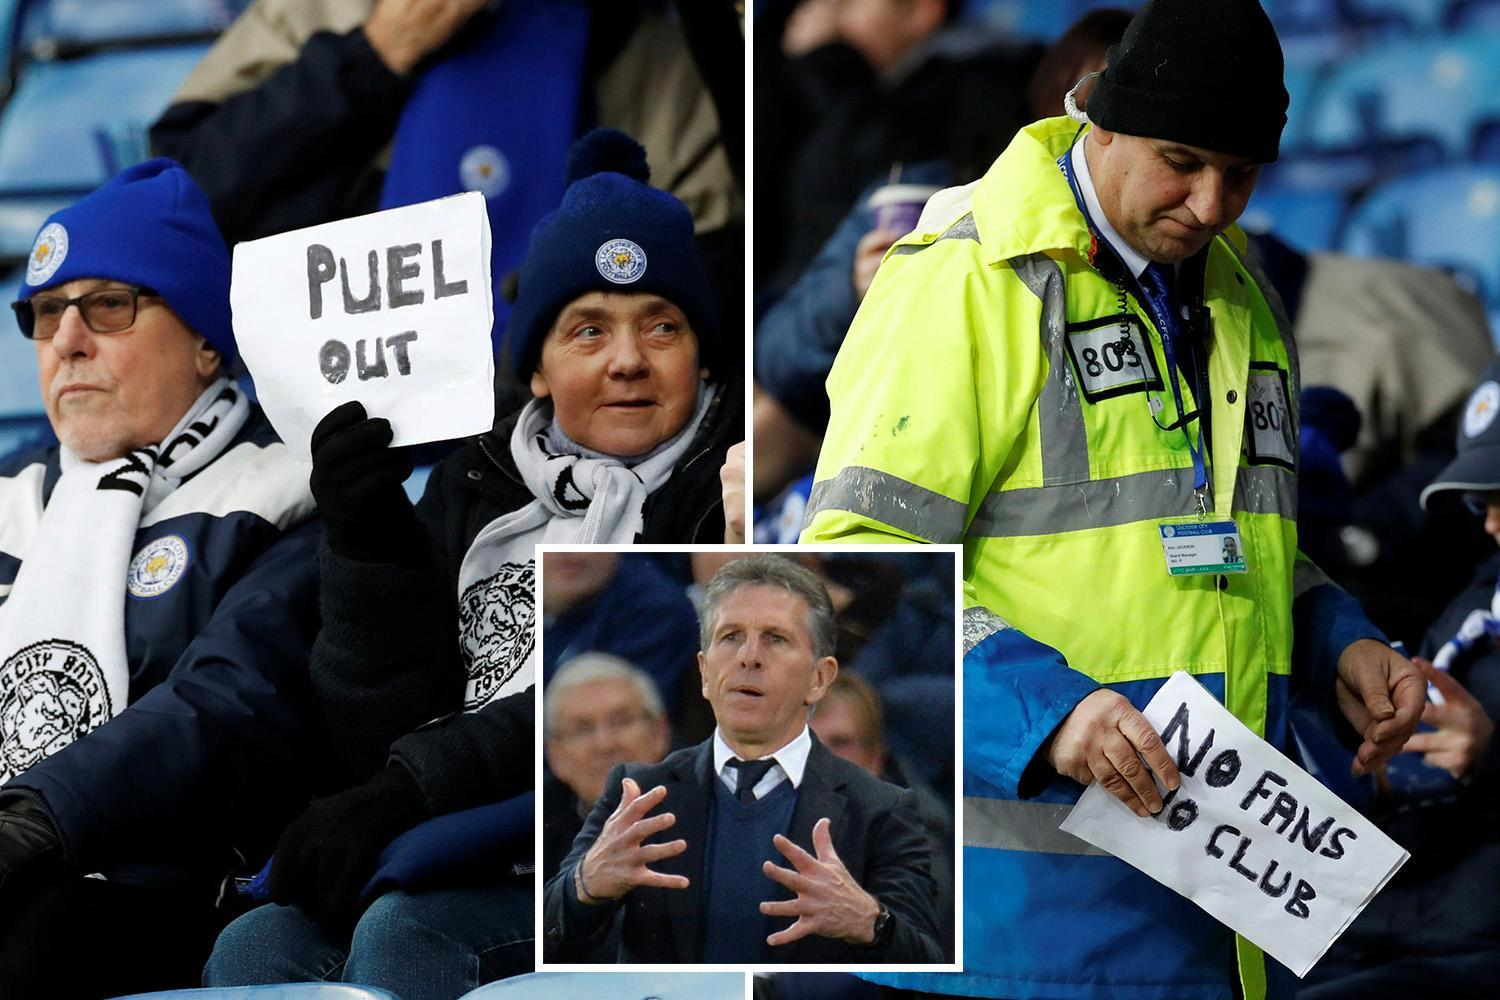 Leicester protesters have 'Puel Out' signs taken by stewards before defeat to Southampton